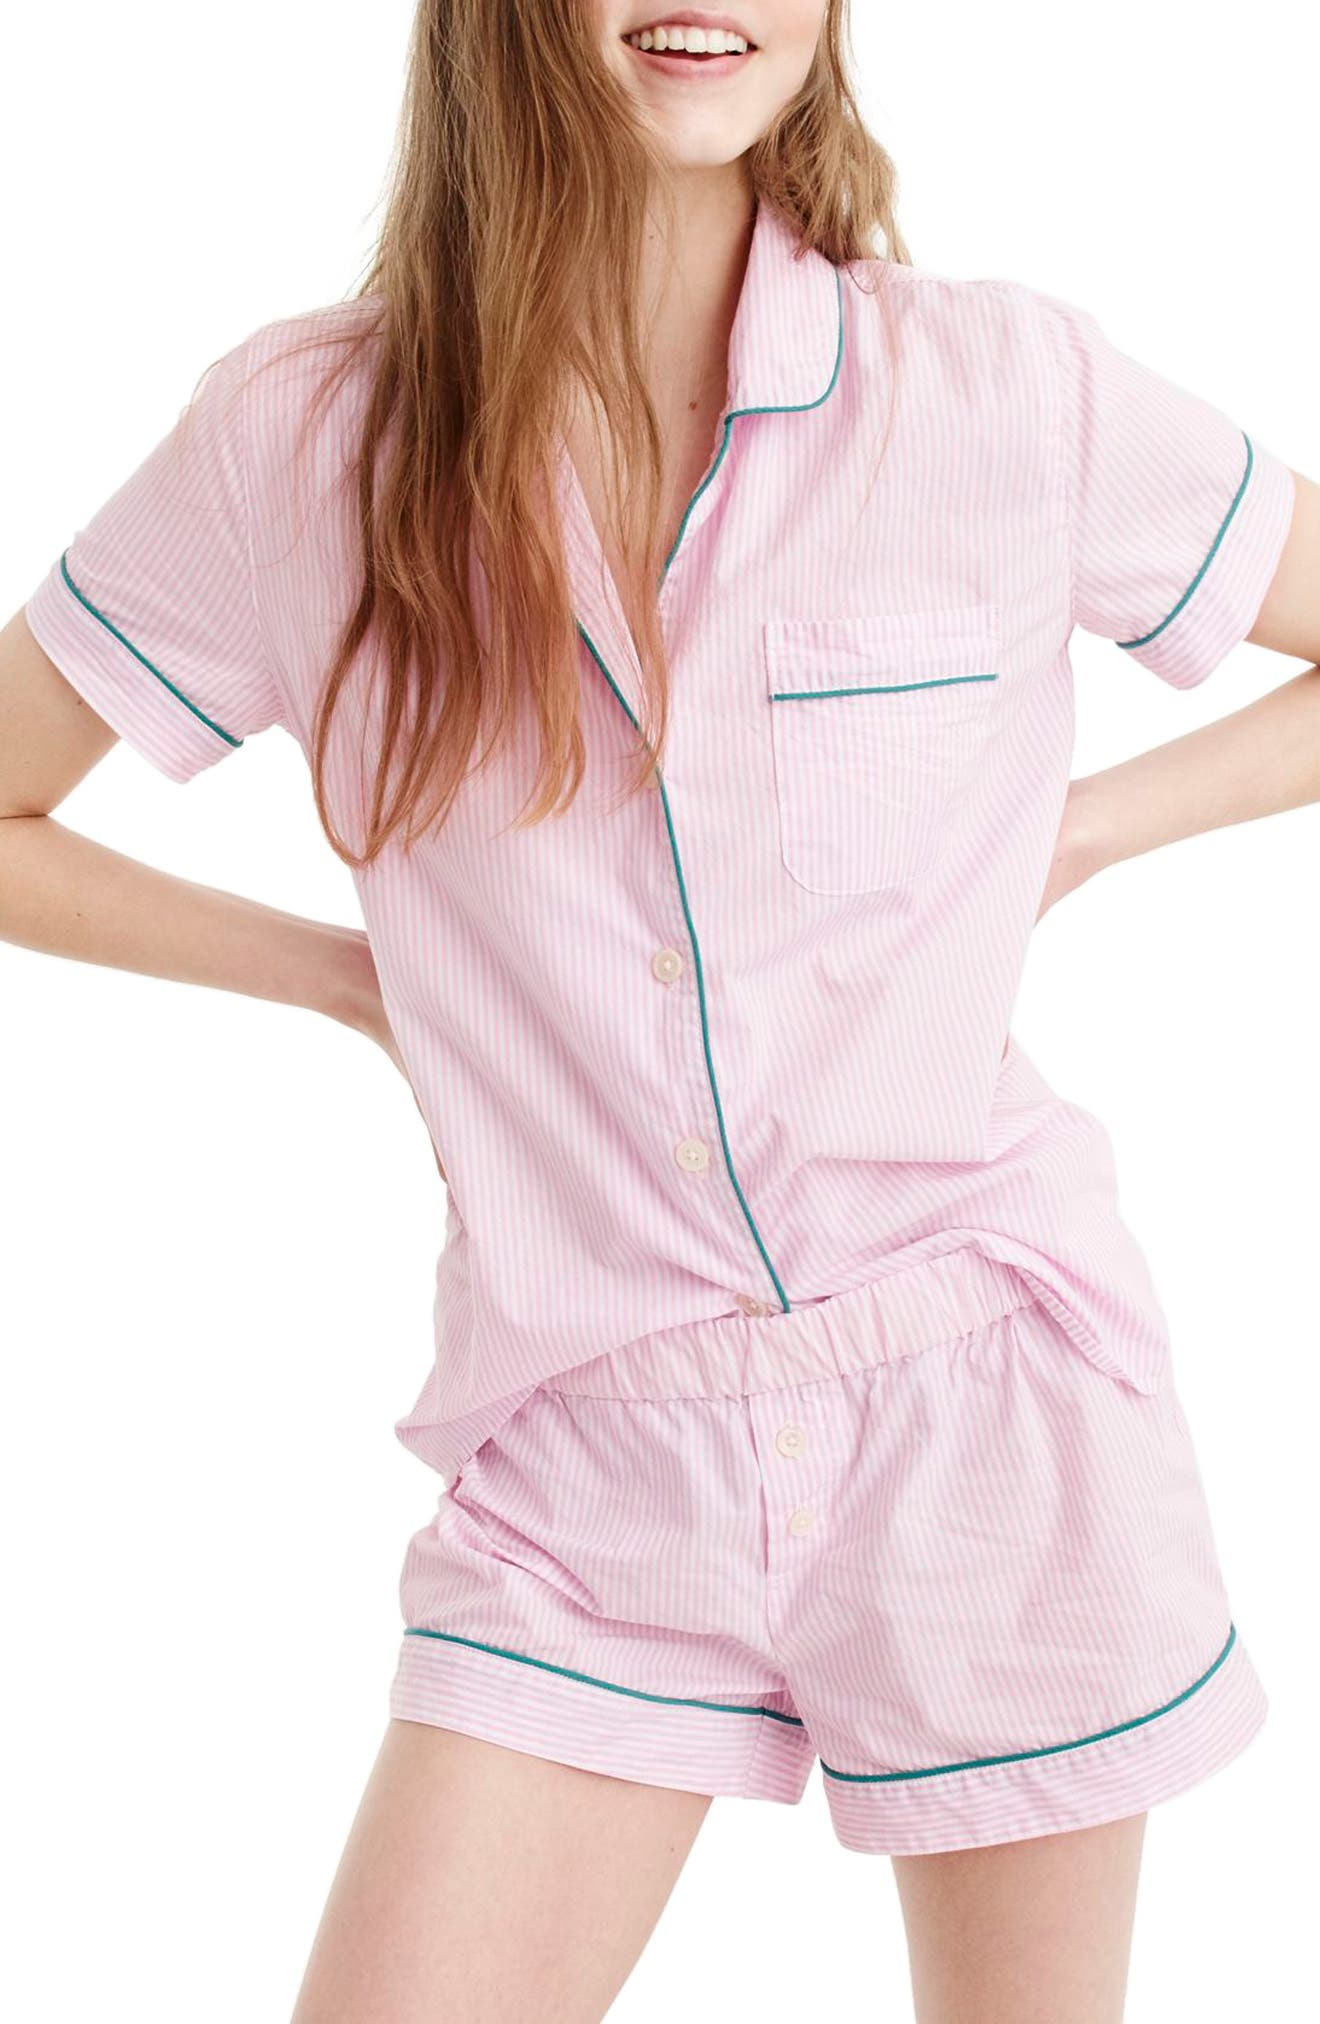 Tipped Short Pajamas,                         Main,                         color, White Hibiscus